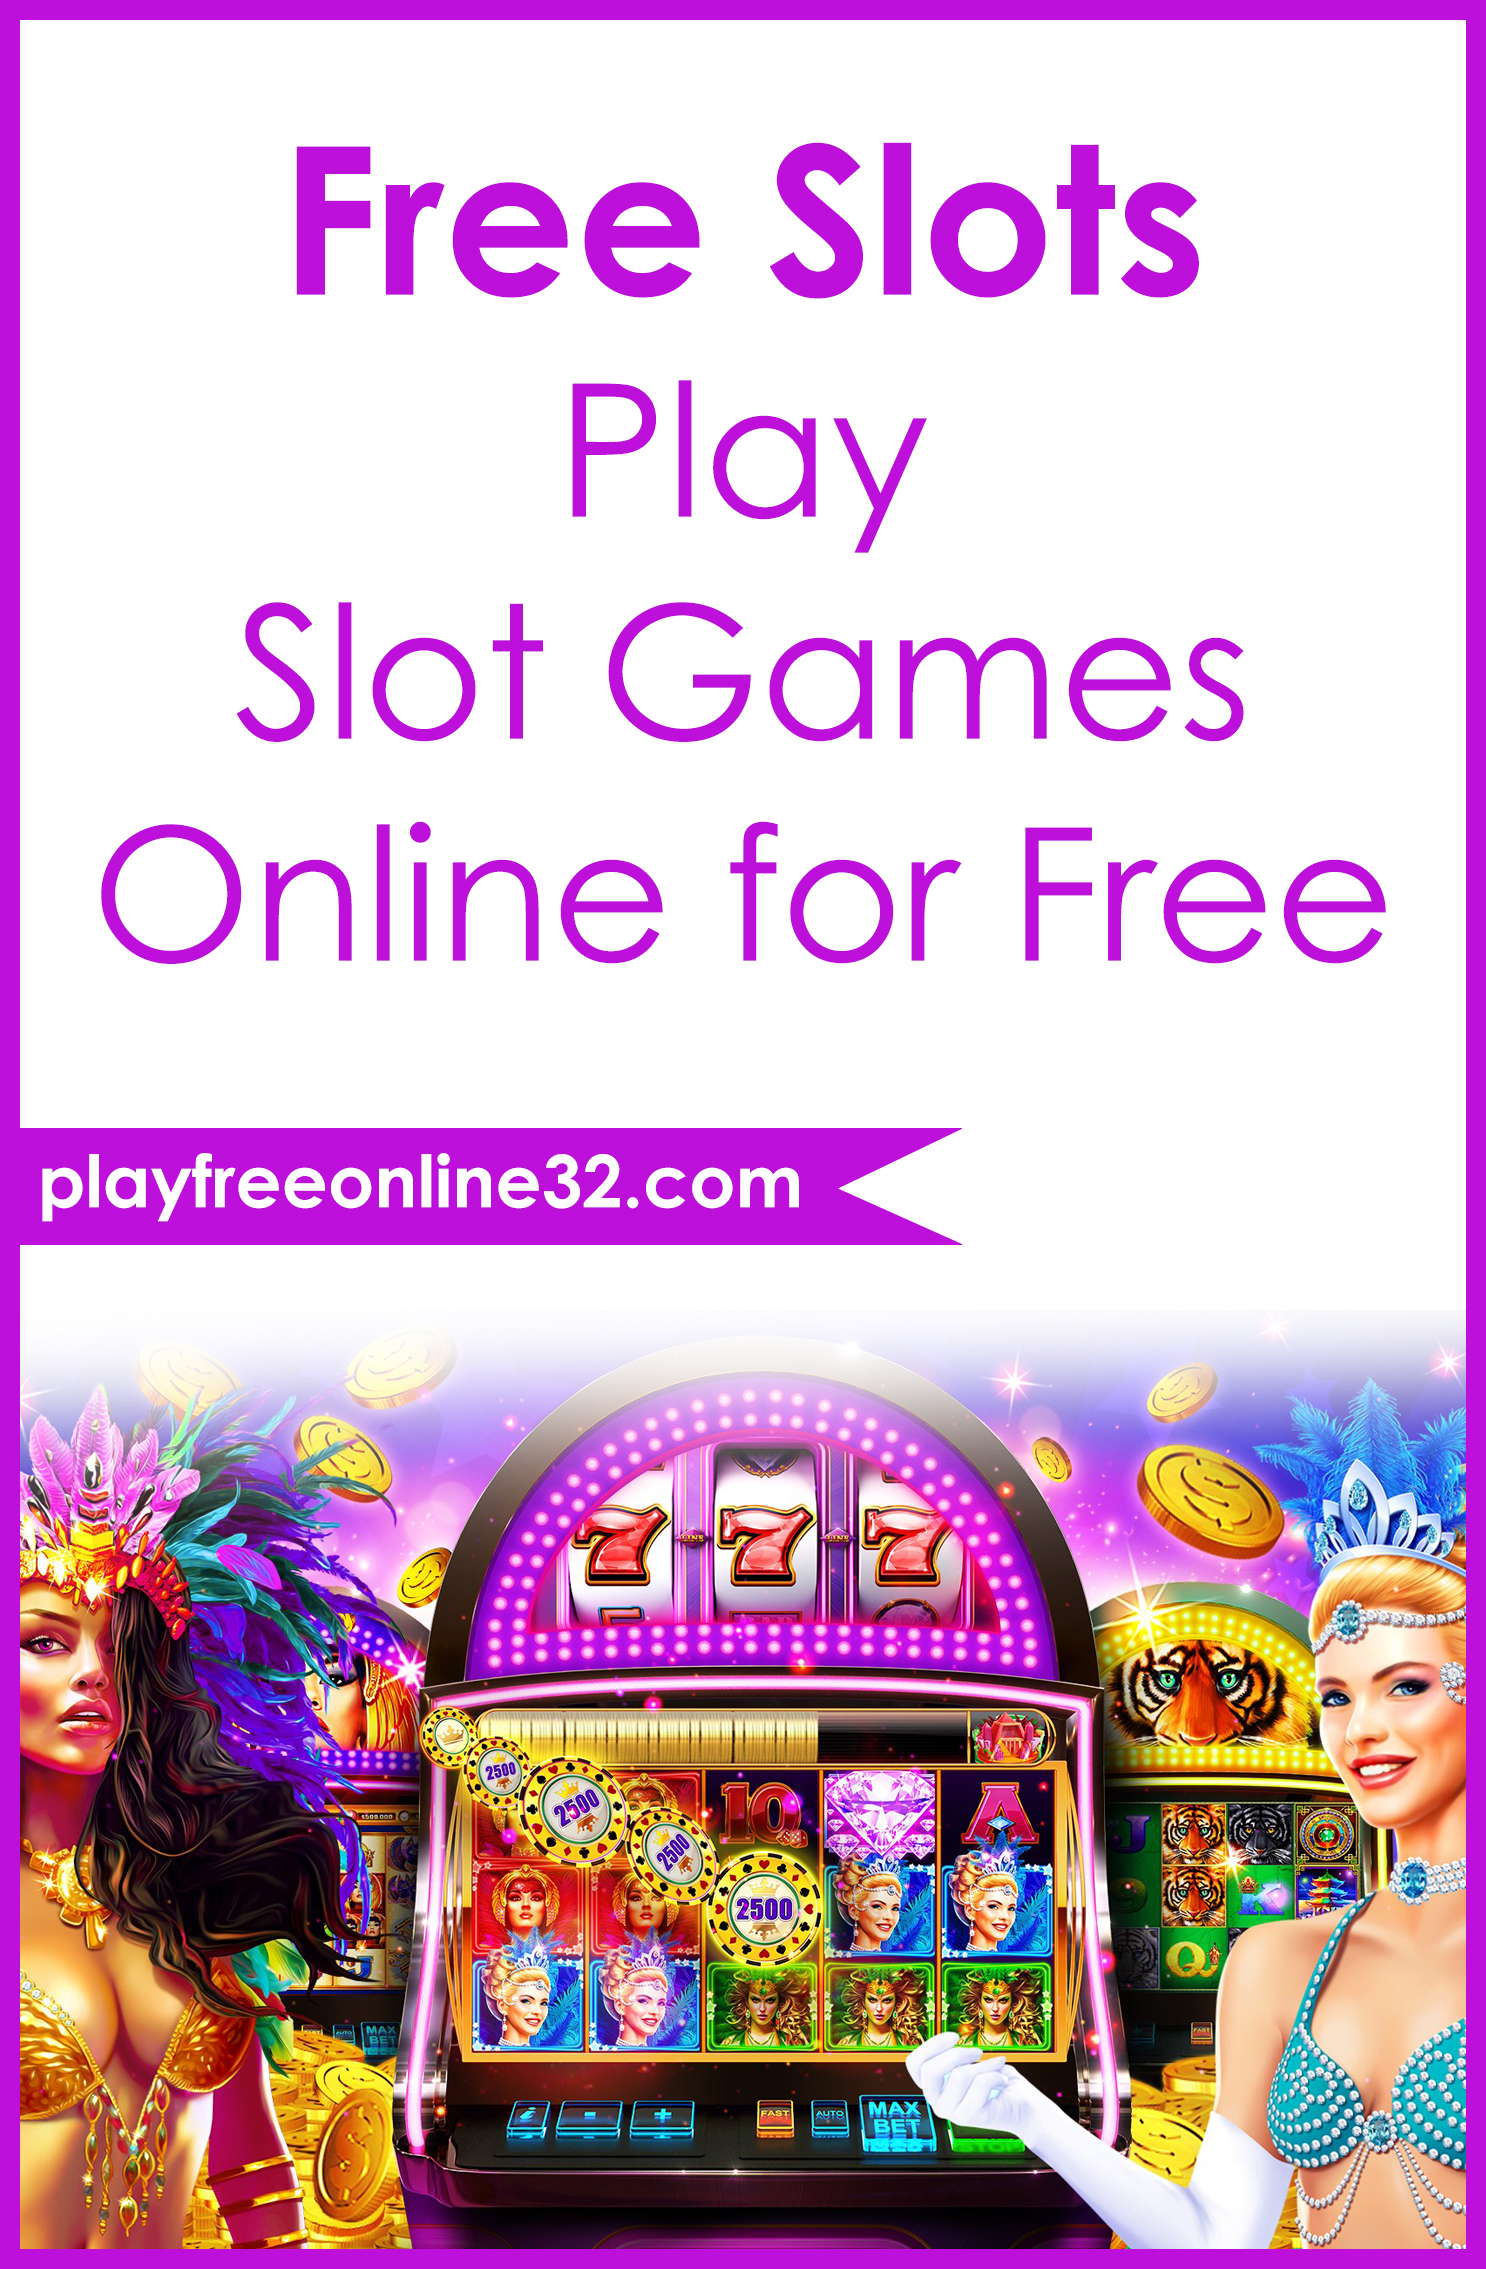 Free Slots • Play Slot Games Online for Free Pinterest